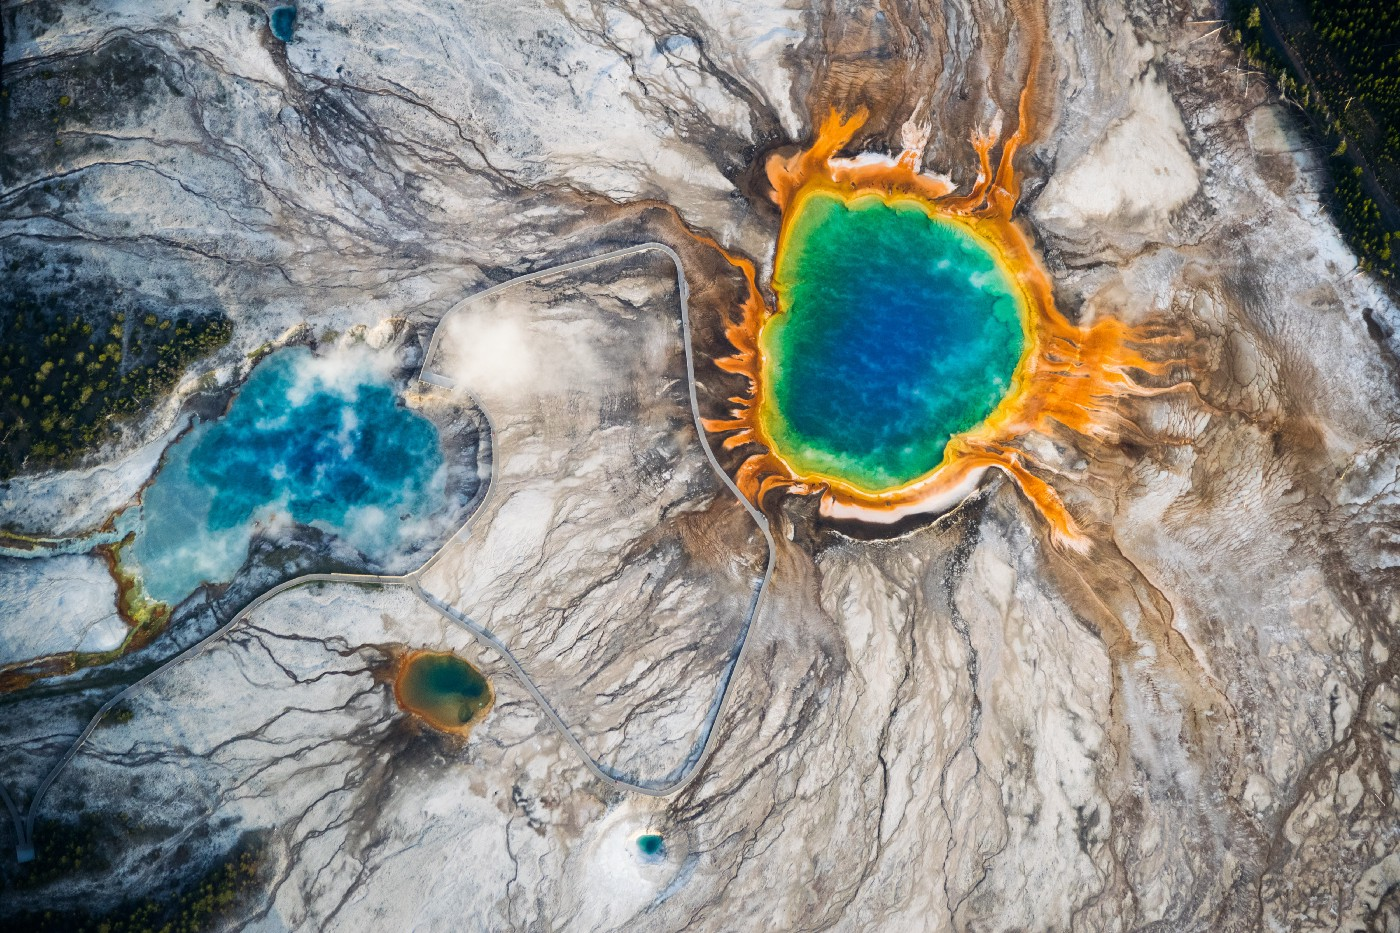 The hot pools of Yellowstone, a National Park with a supervolcano beneath it